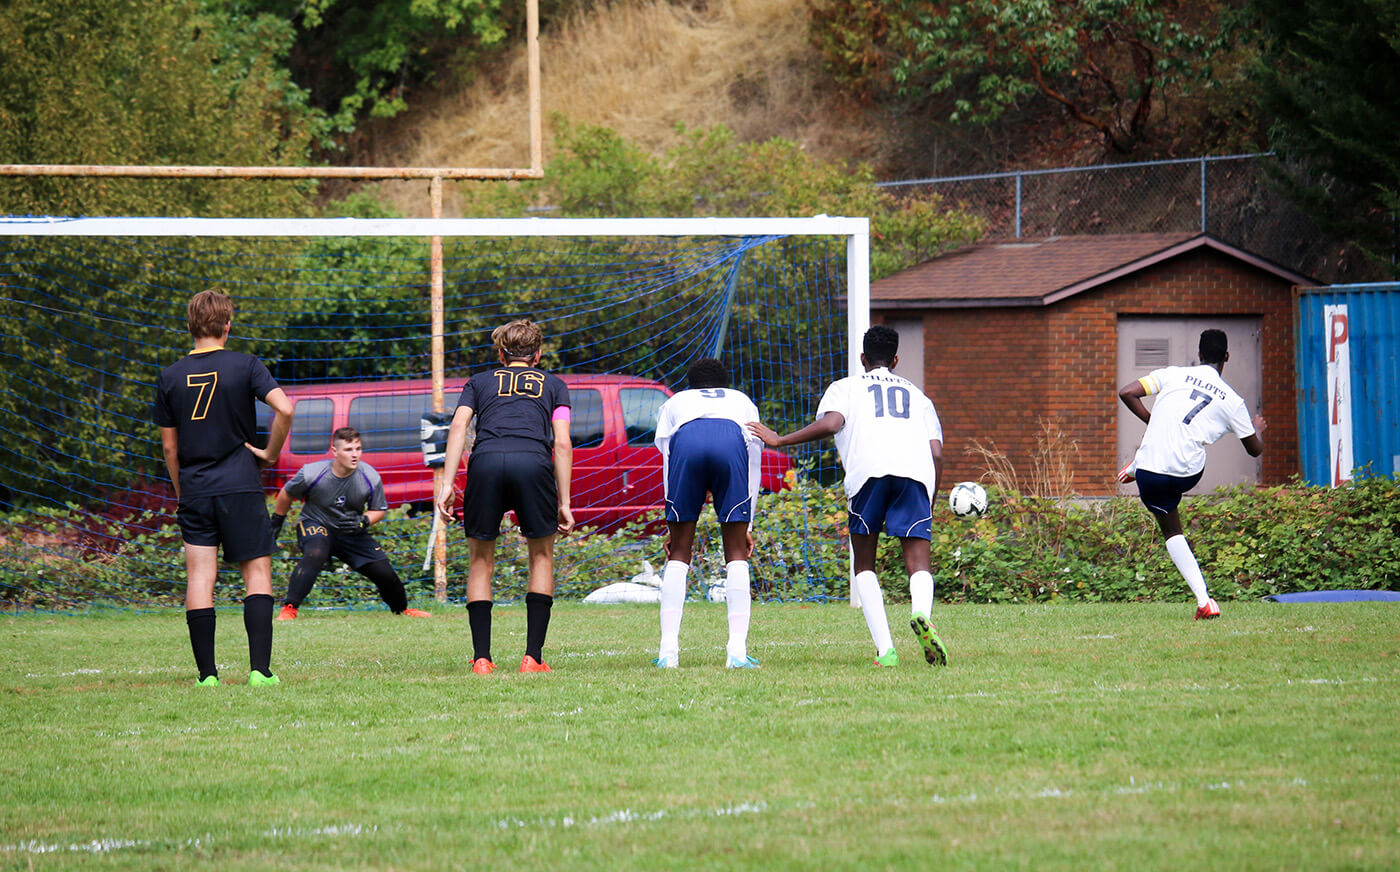 Canyonville christian academy's, boys' soccer team, kicks a penalty kick, to score a goal